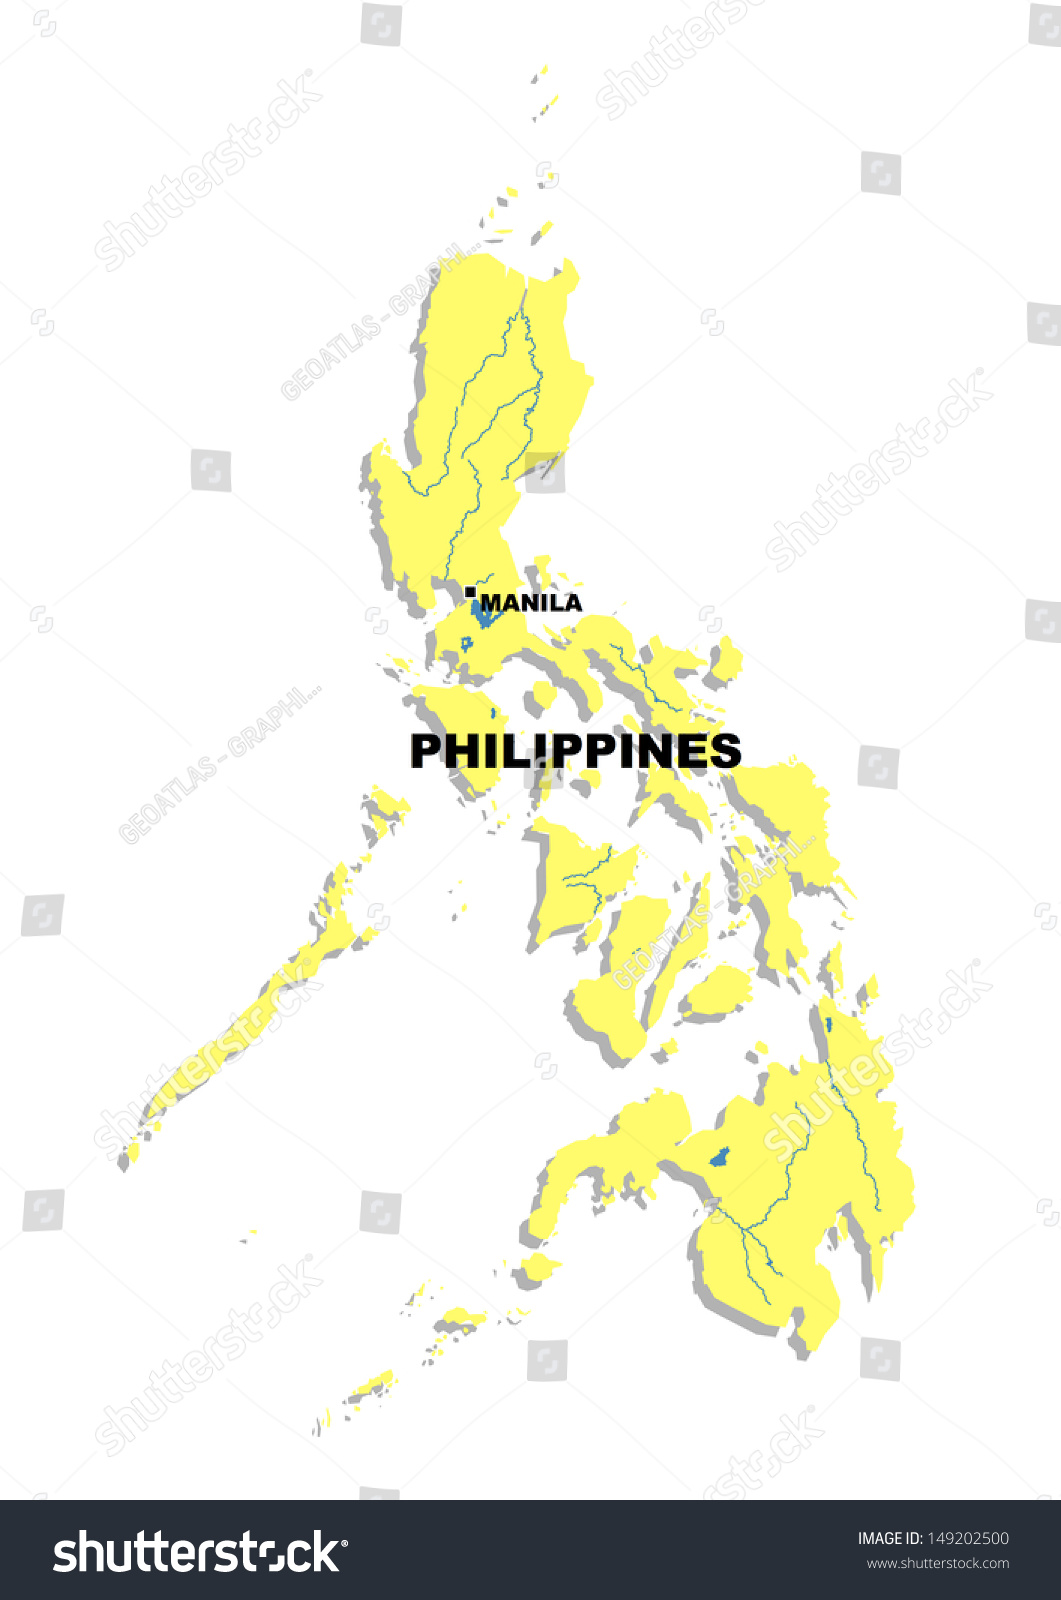 Simple Philippines Map.Royalty Free Stock Illustration Of Simple Map Philippines Stock